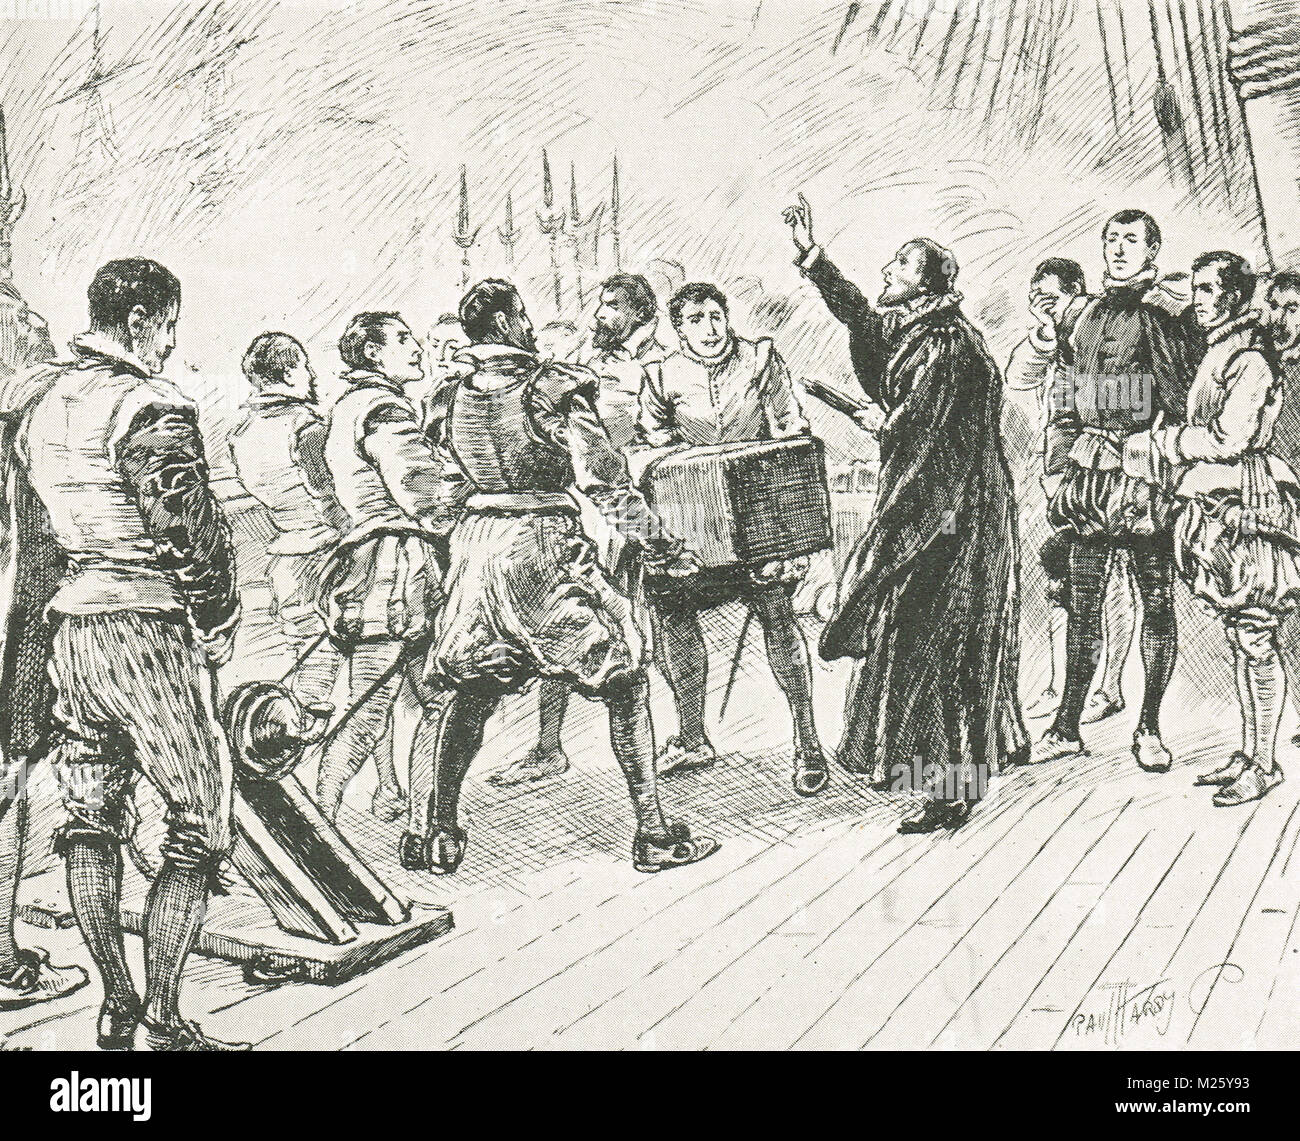 Funeral of Francis Drake, January 1596.  Buried at sea in a lead-lined coffin, near Portobelo, Panama - Stock Image